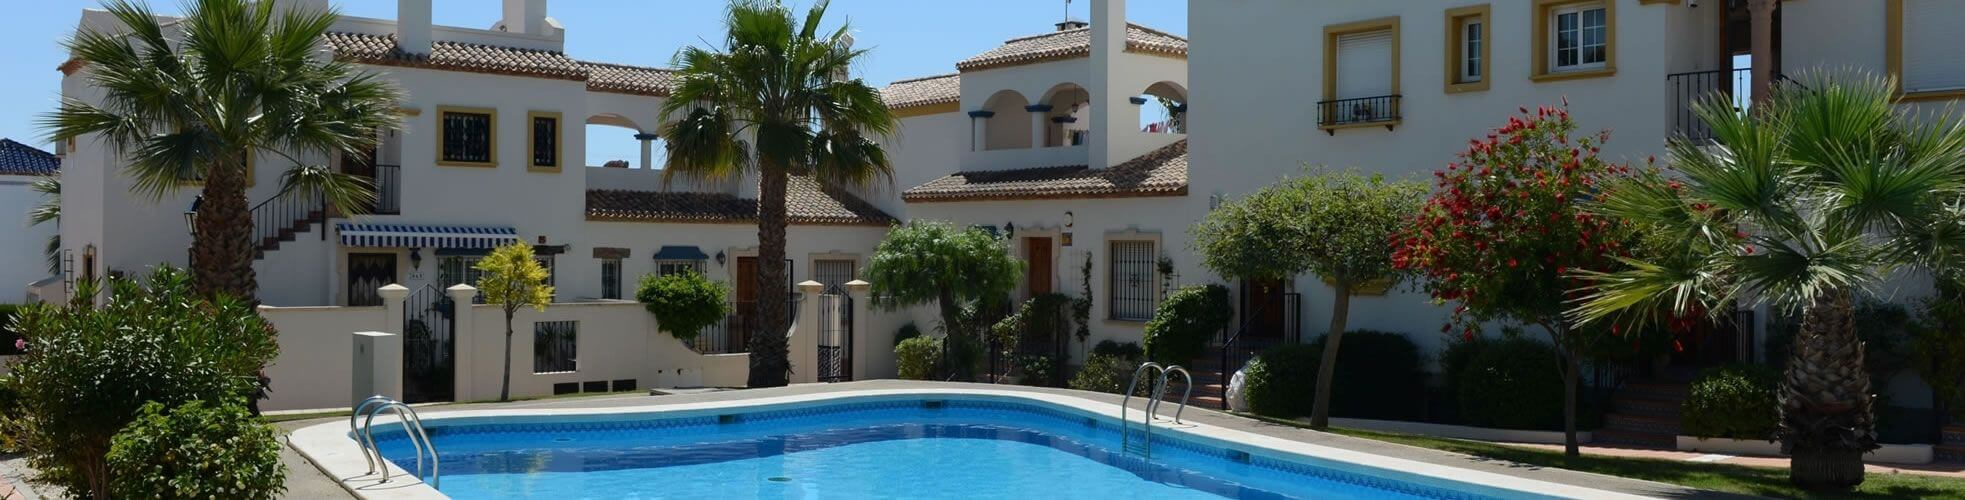 Exclusive property in Cabo Roig, Campoamor, La Zenia and Playa Flamenca